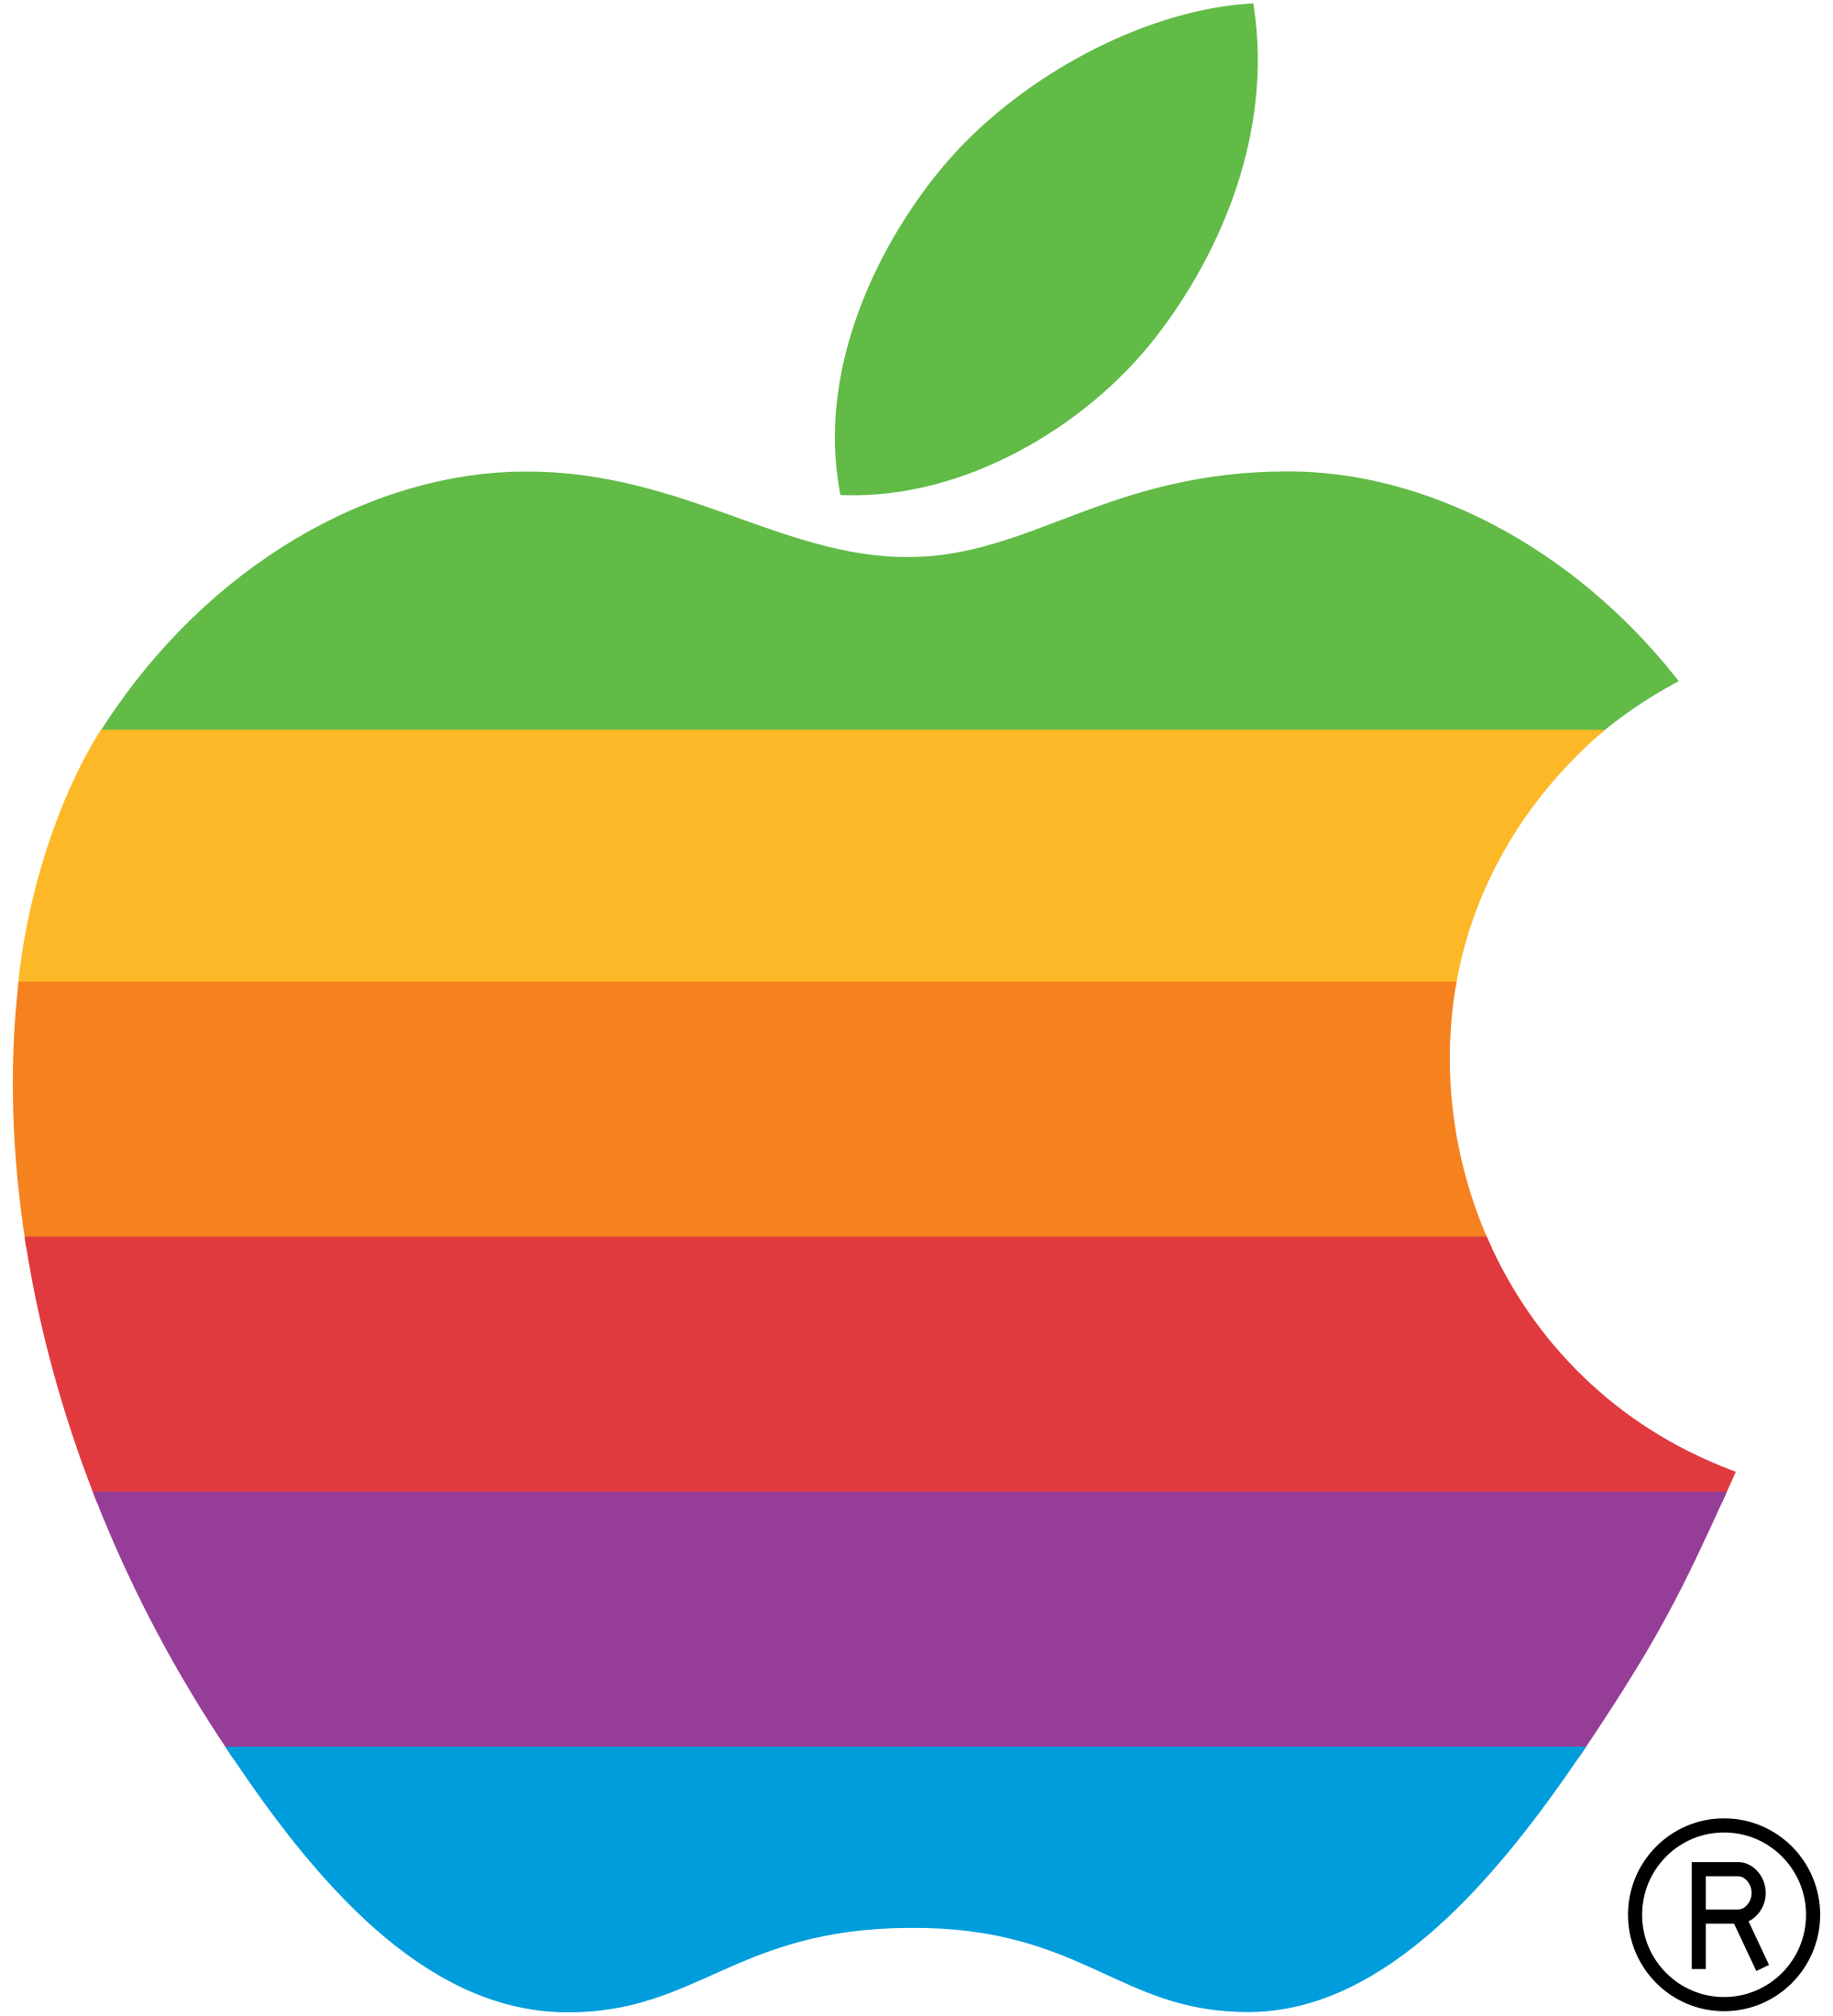 The Apple logo is a great example of a memorable logo. It is simple and graphic, and stands out in your mind.